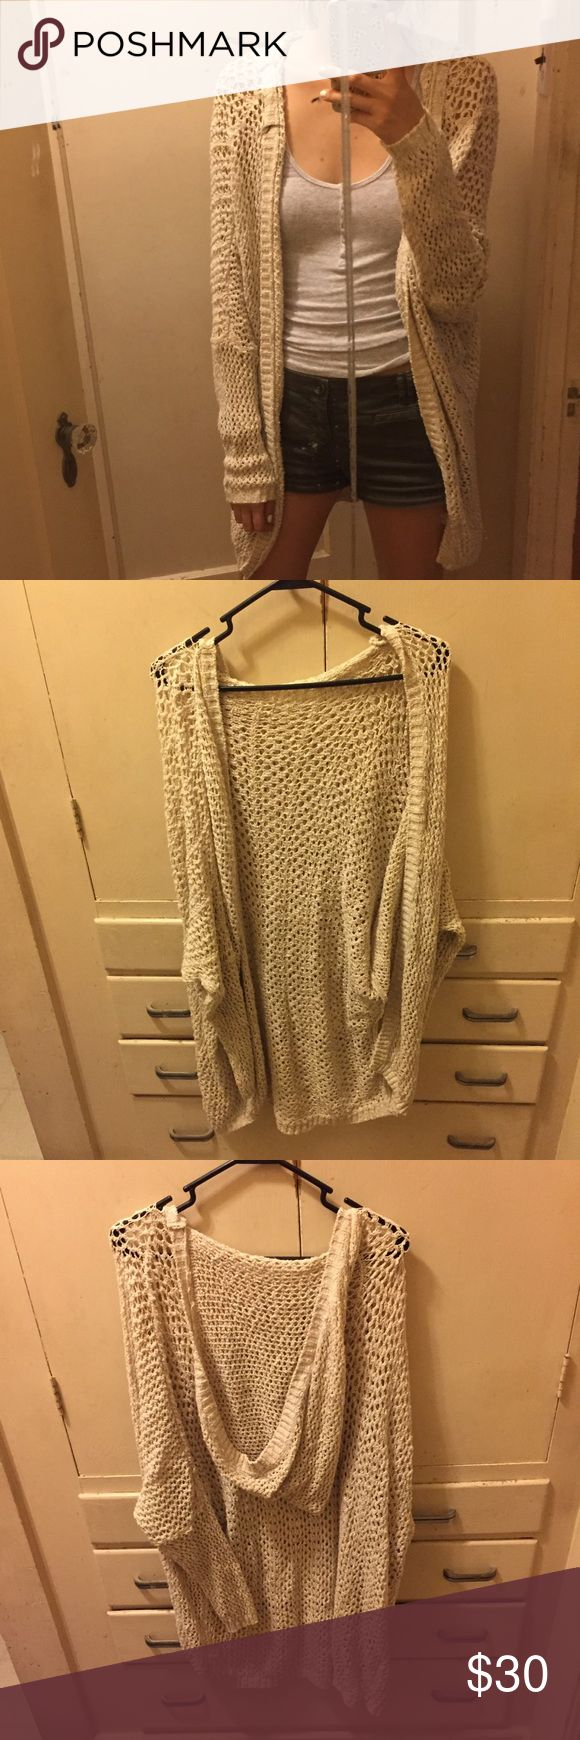 "Brandy Melville Cardigan Long crochet cotton/polyester cardigan. Worn a couple times. Good condition. Reference: I'm 5'8"" Brandy Melville Sweaters Cardigans"